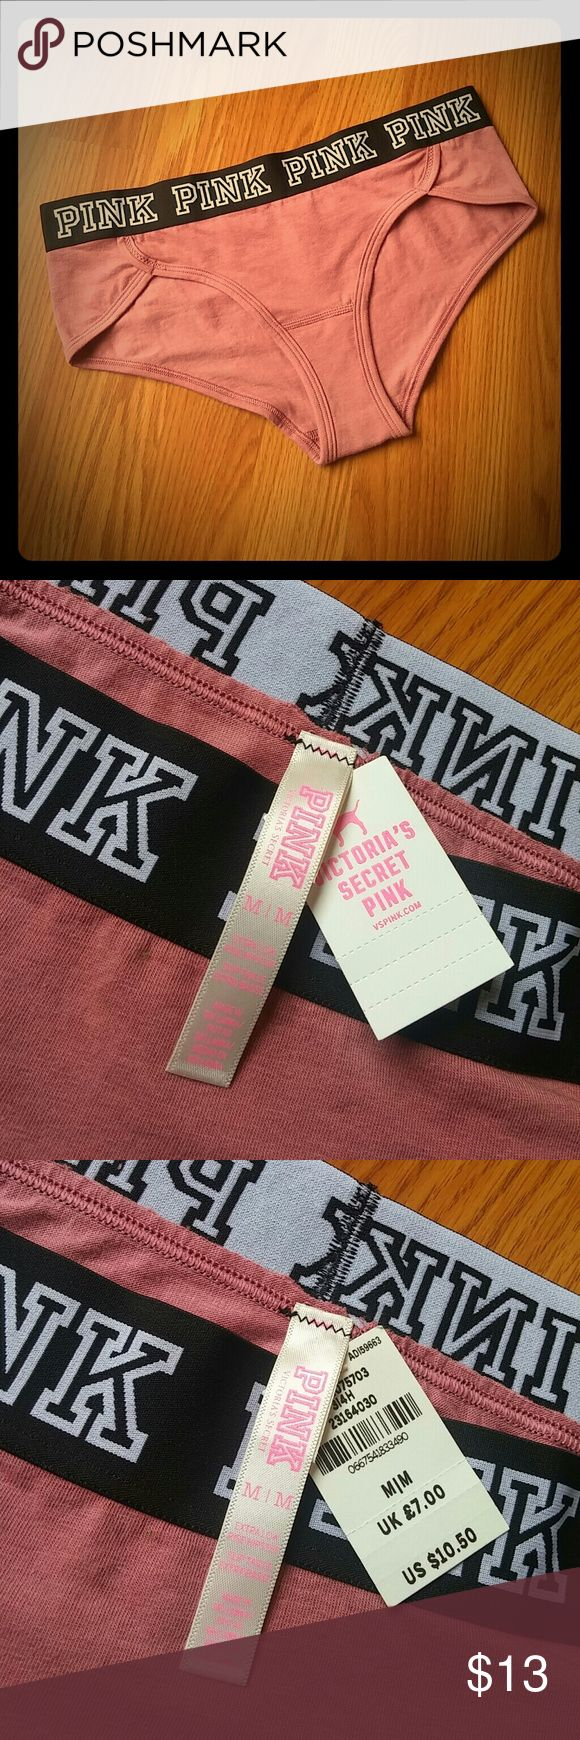 Begonia logo hipsters Brand new with tags.💗 PINK Victoria's Secret Intimates & Sleepwear Panties